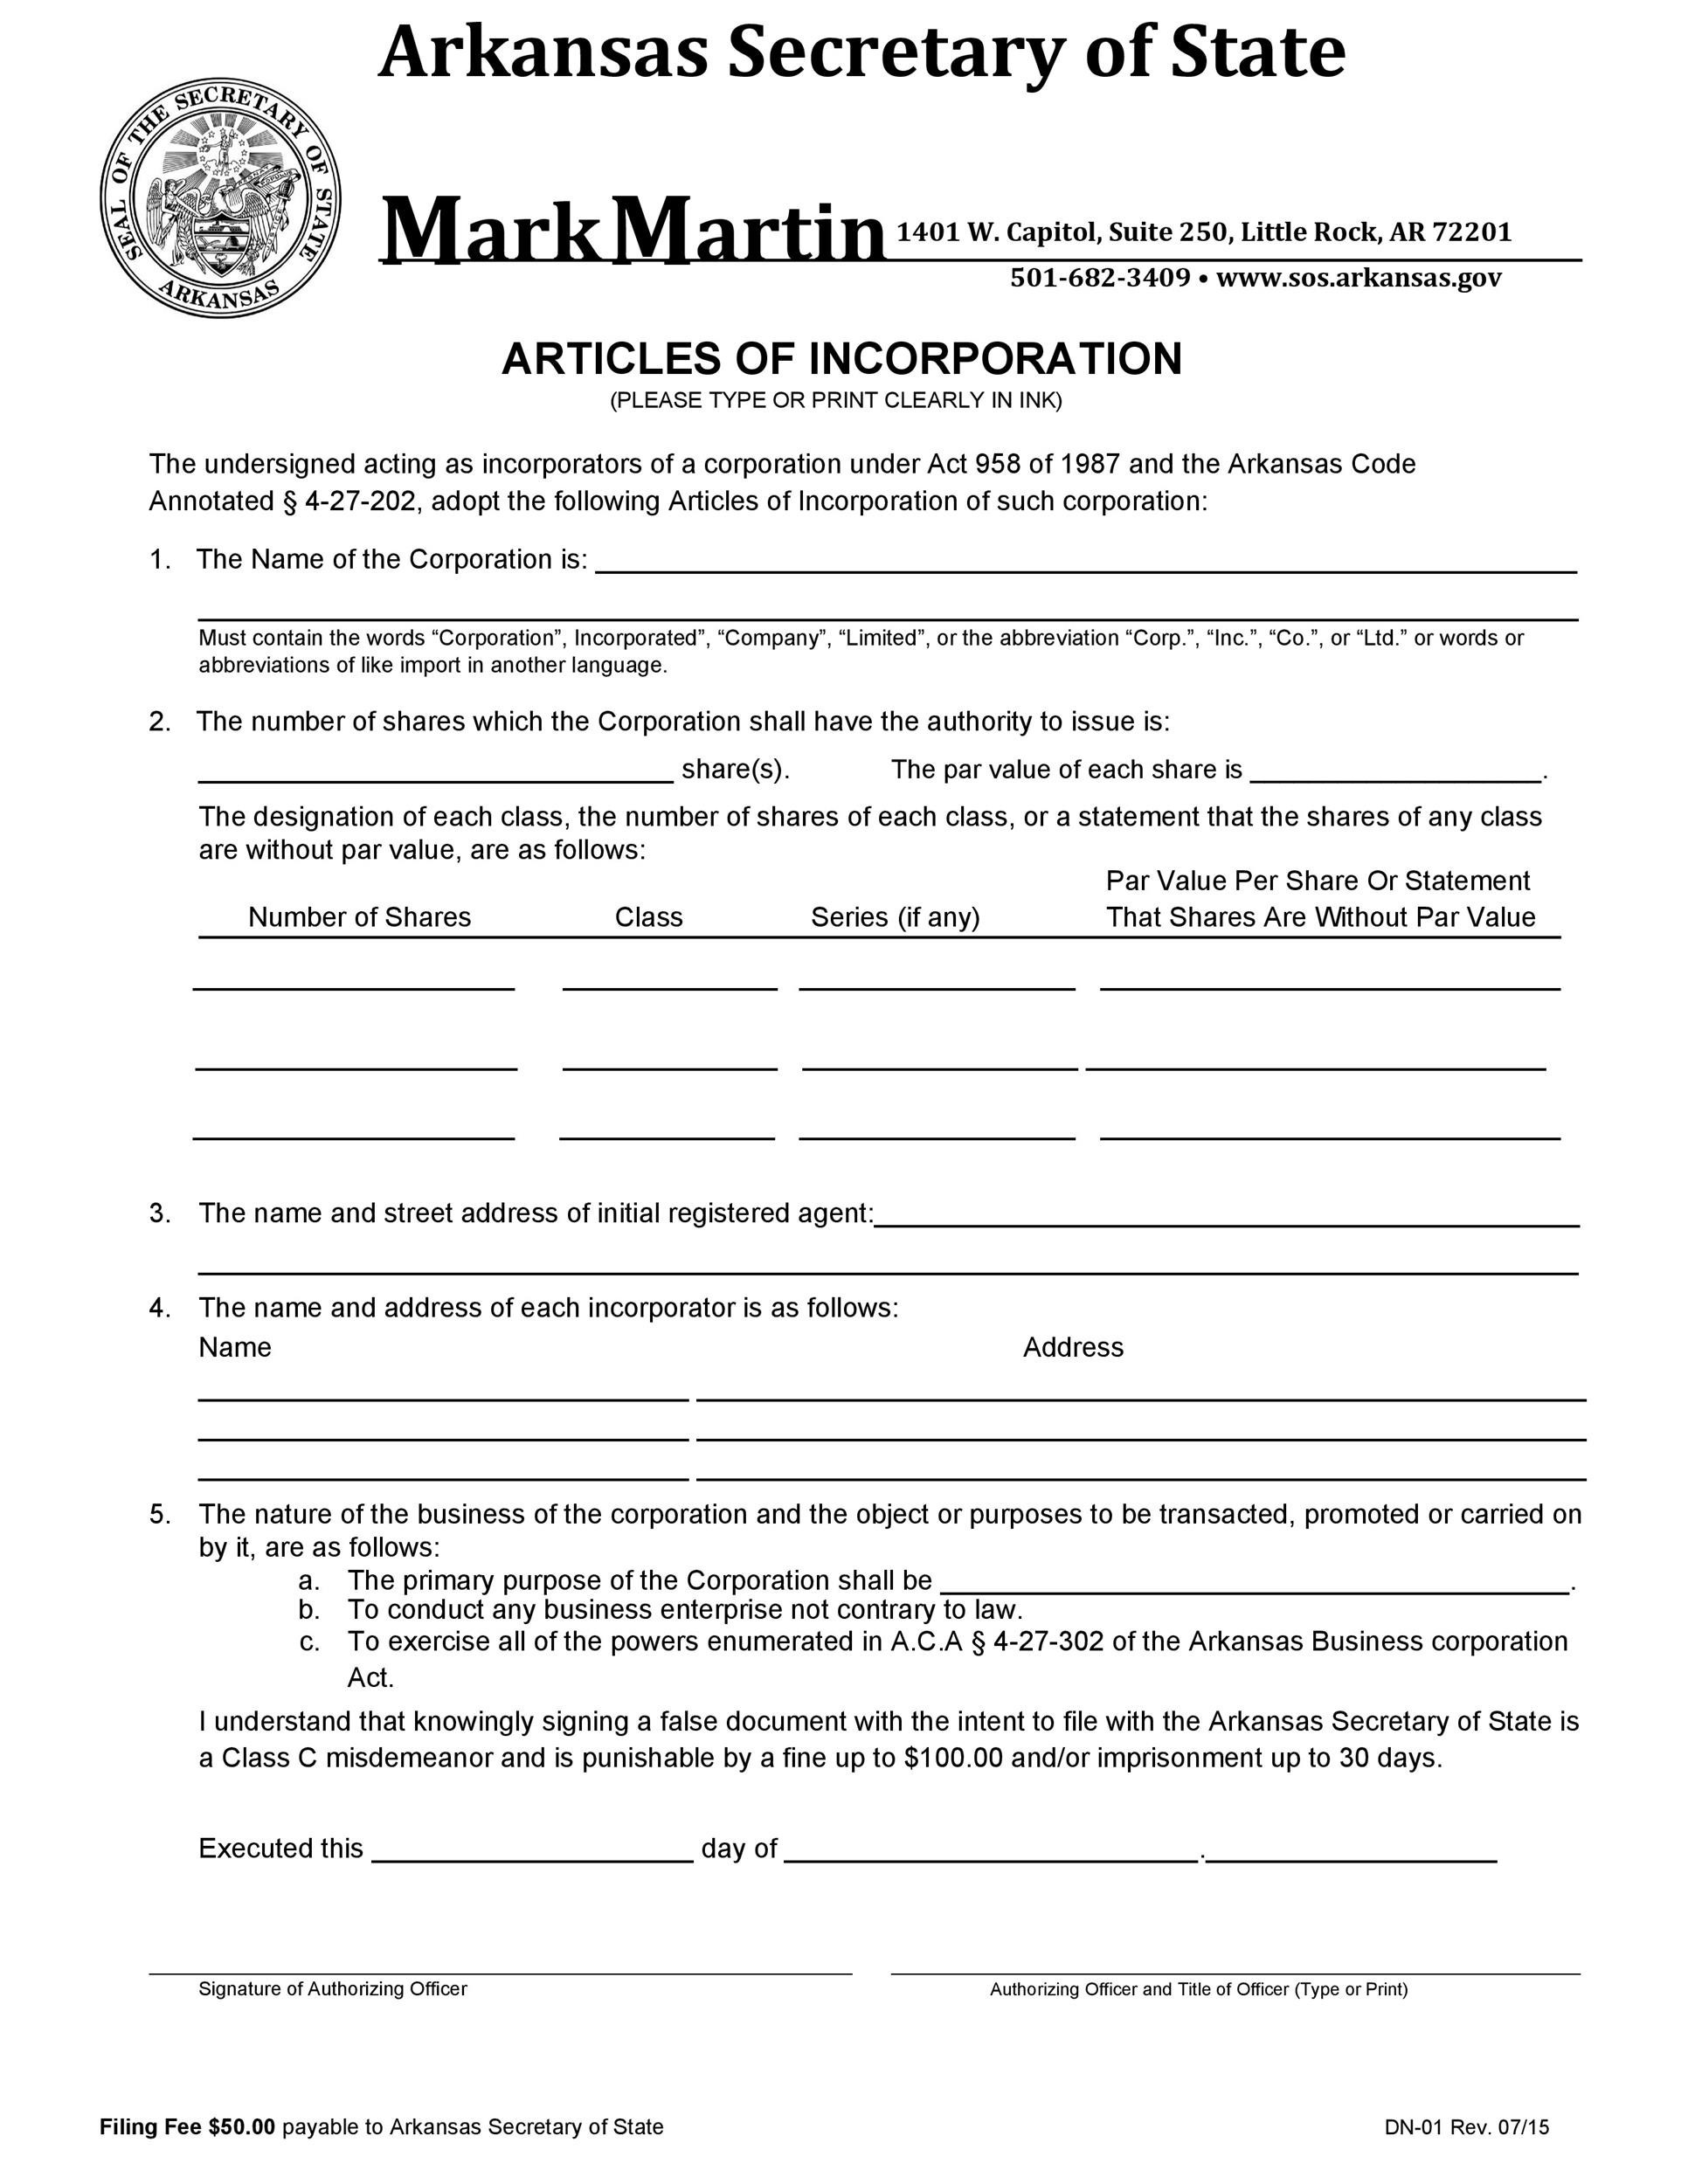 Free articles of incorporation template 32